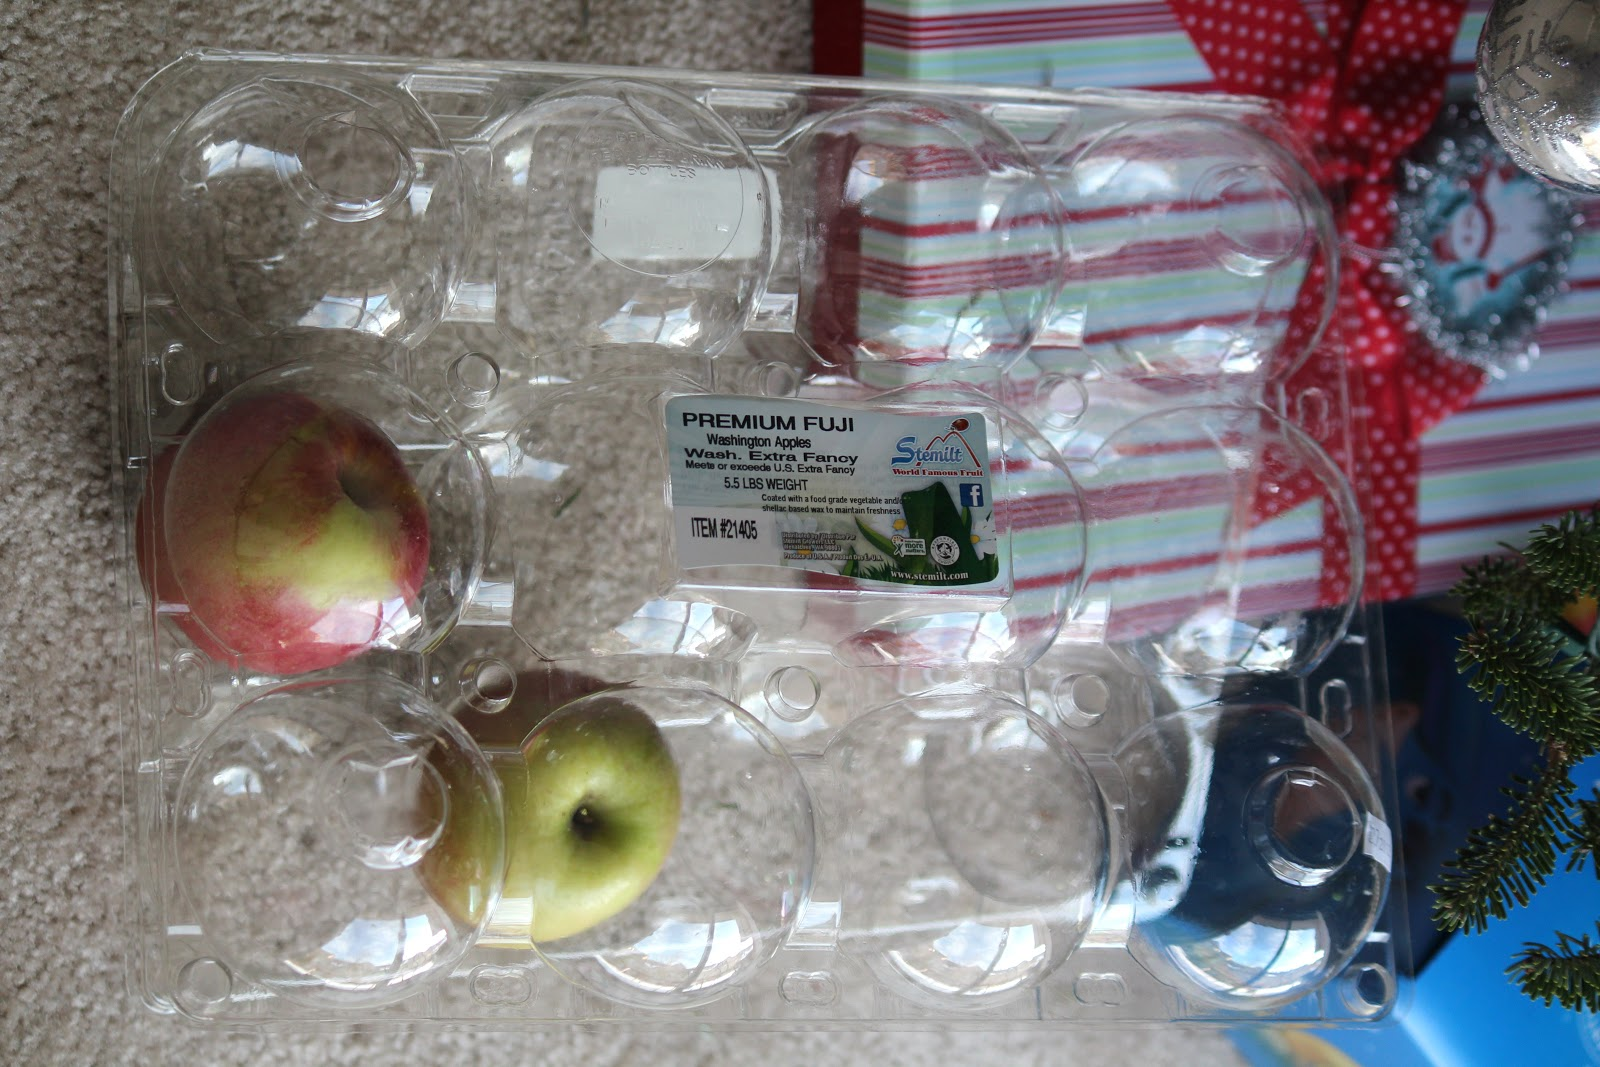 The Red Apron Reusing Plastic Apple Containers From Costco